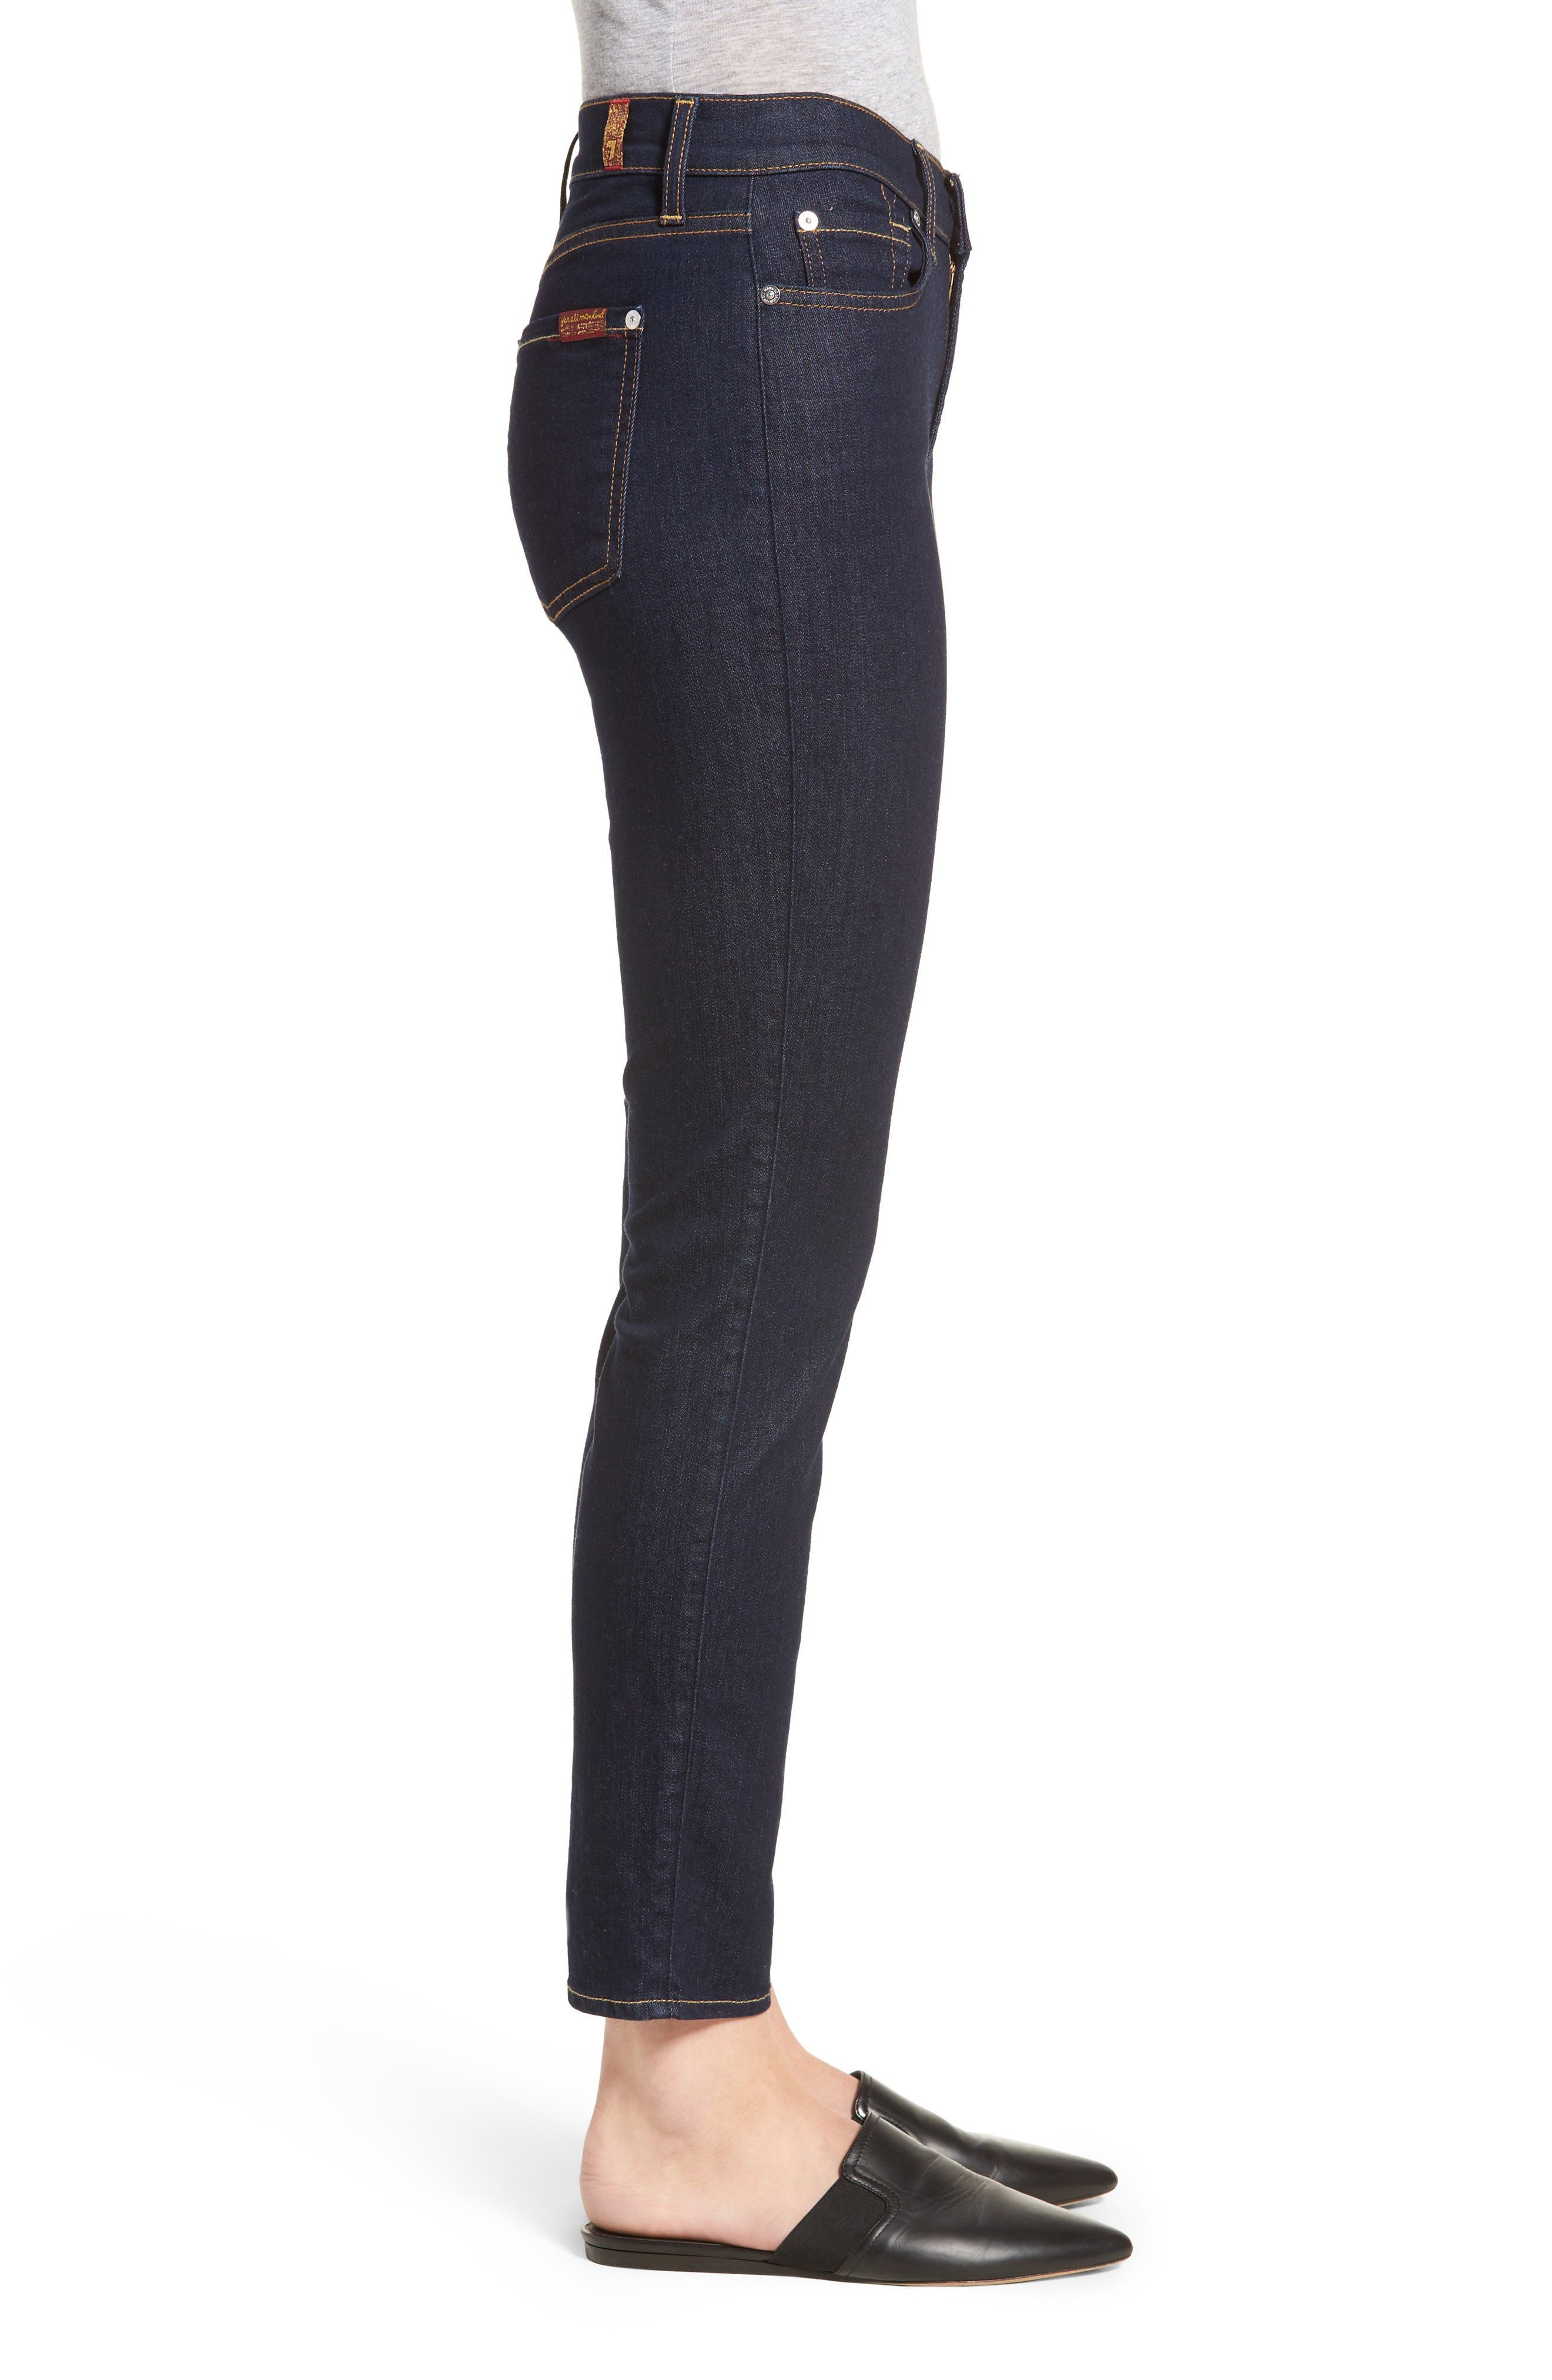 b(air) Roxanne Ankle Skinny Jeans,                             Alternate thumbnail 3, color,                             B(Air) Authentic Rinse